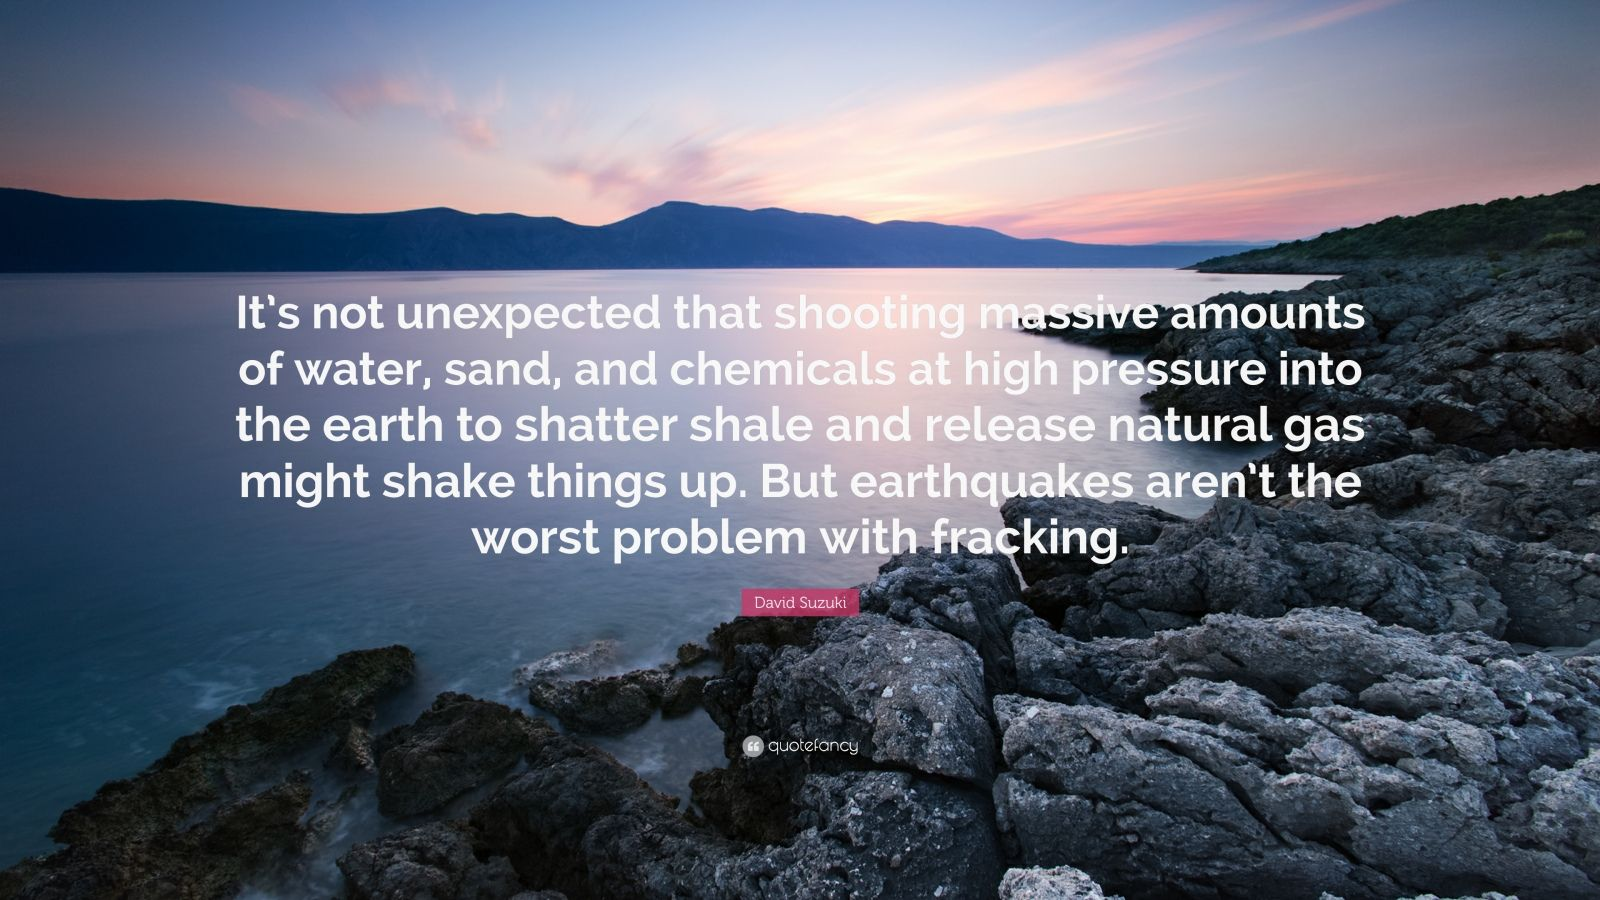 "David Suzuki Quote: ""It's not unexpected that shooting massive amounts of water, sand, and chemicals at high pressure into the earth to shatter shale and release natural gas might shake things up. But earthquakes aren't the worst problem with fracking."""